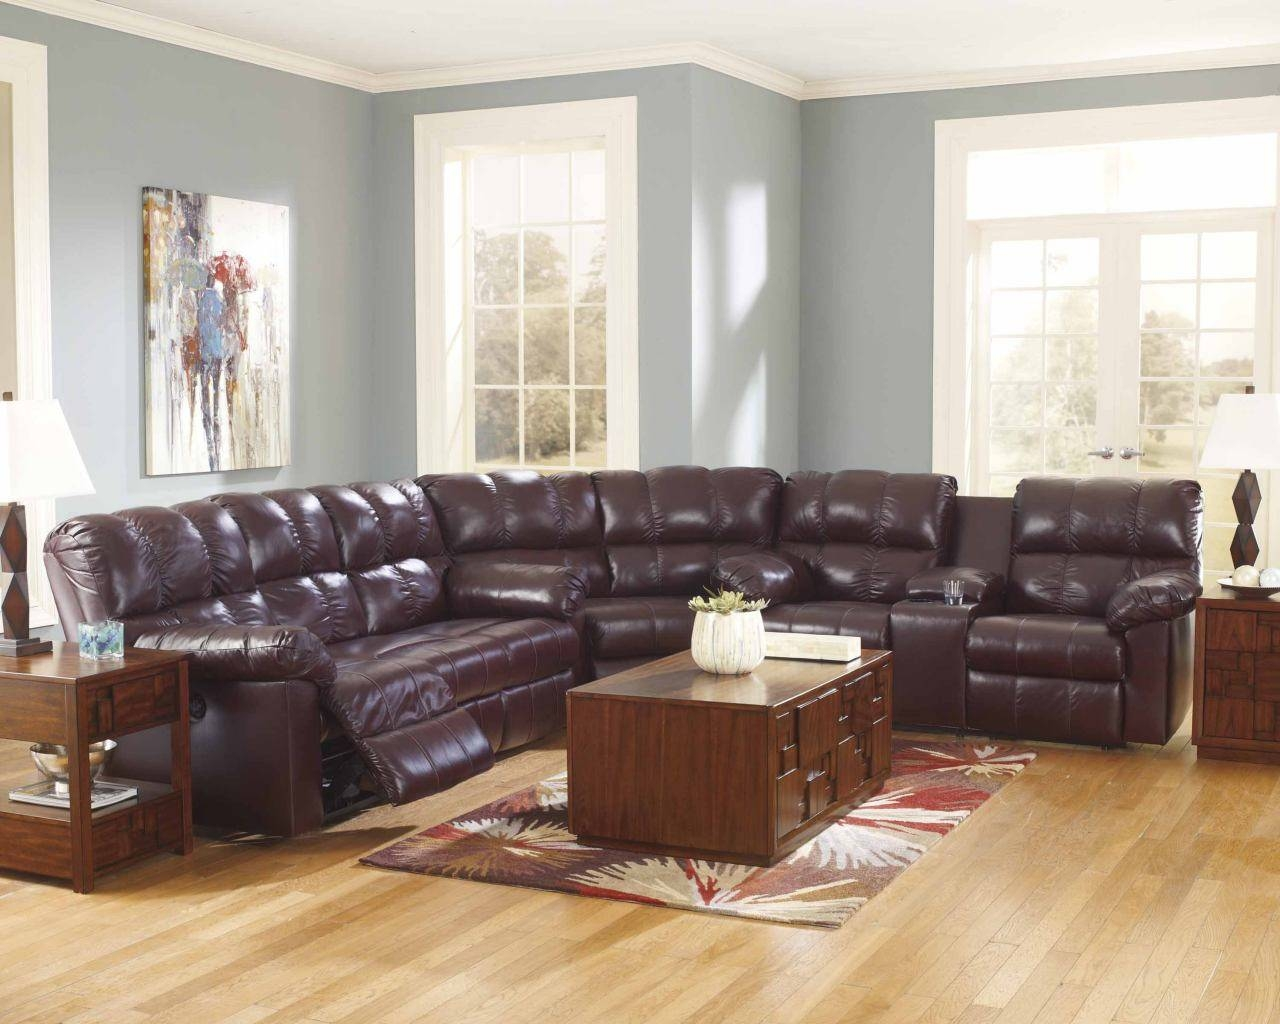 Power Reclining Sectional Sofa In Burgundy 290 in Recliner Sectional Sofas (Image 25 of 30)